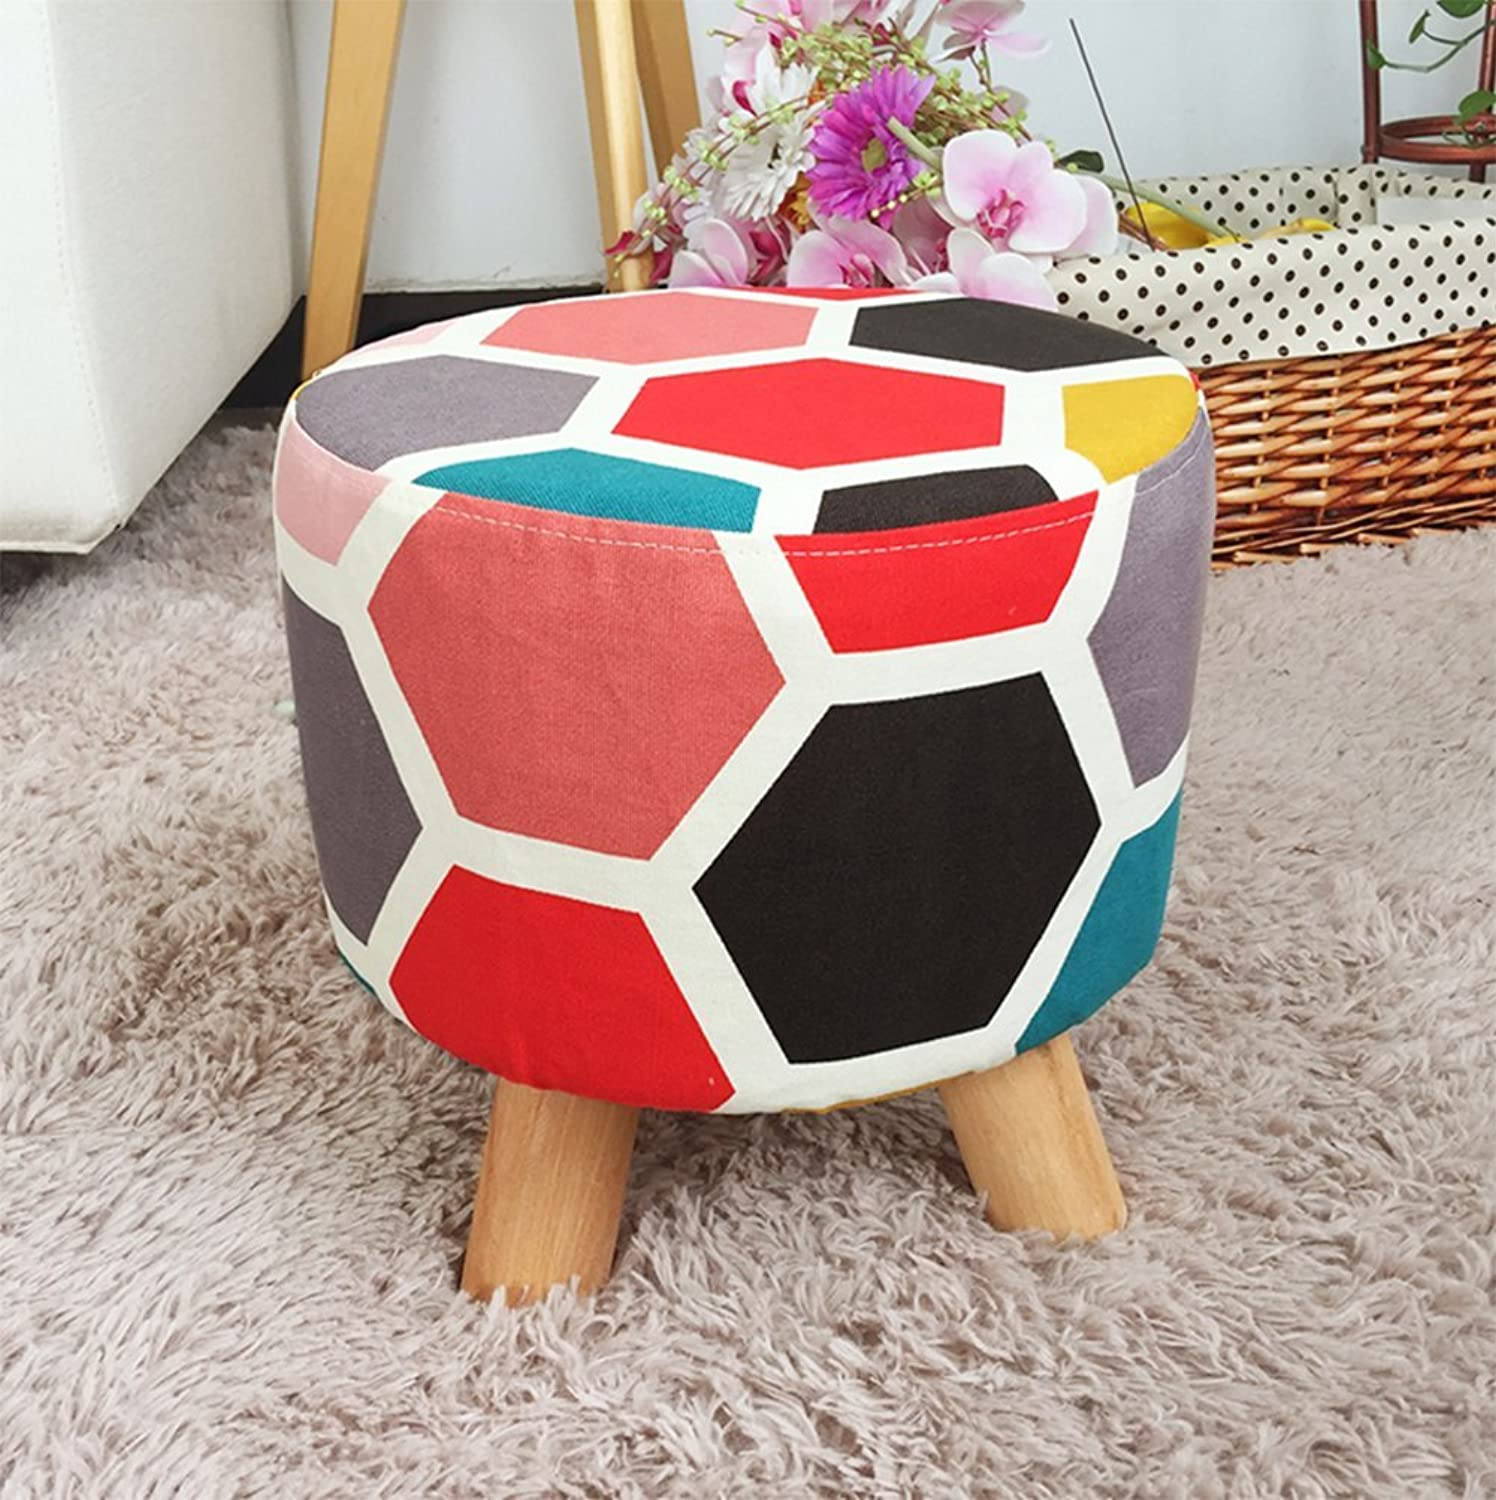 Cloth Small Stool, Creative Living Room Simple Stool, Sofa Stool Door Change shoes Bench Home Small Bench,Red